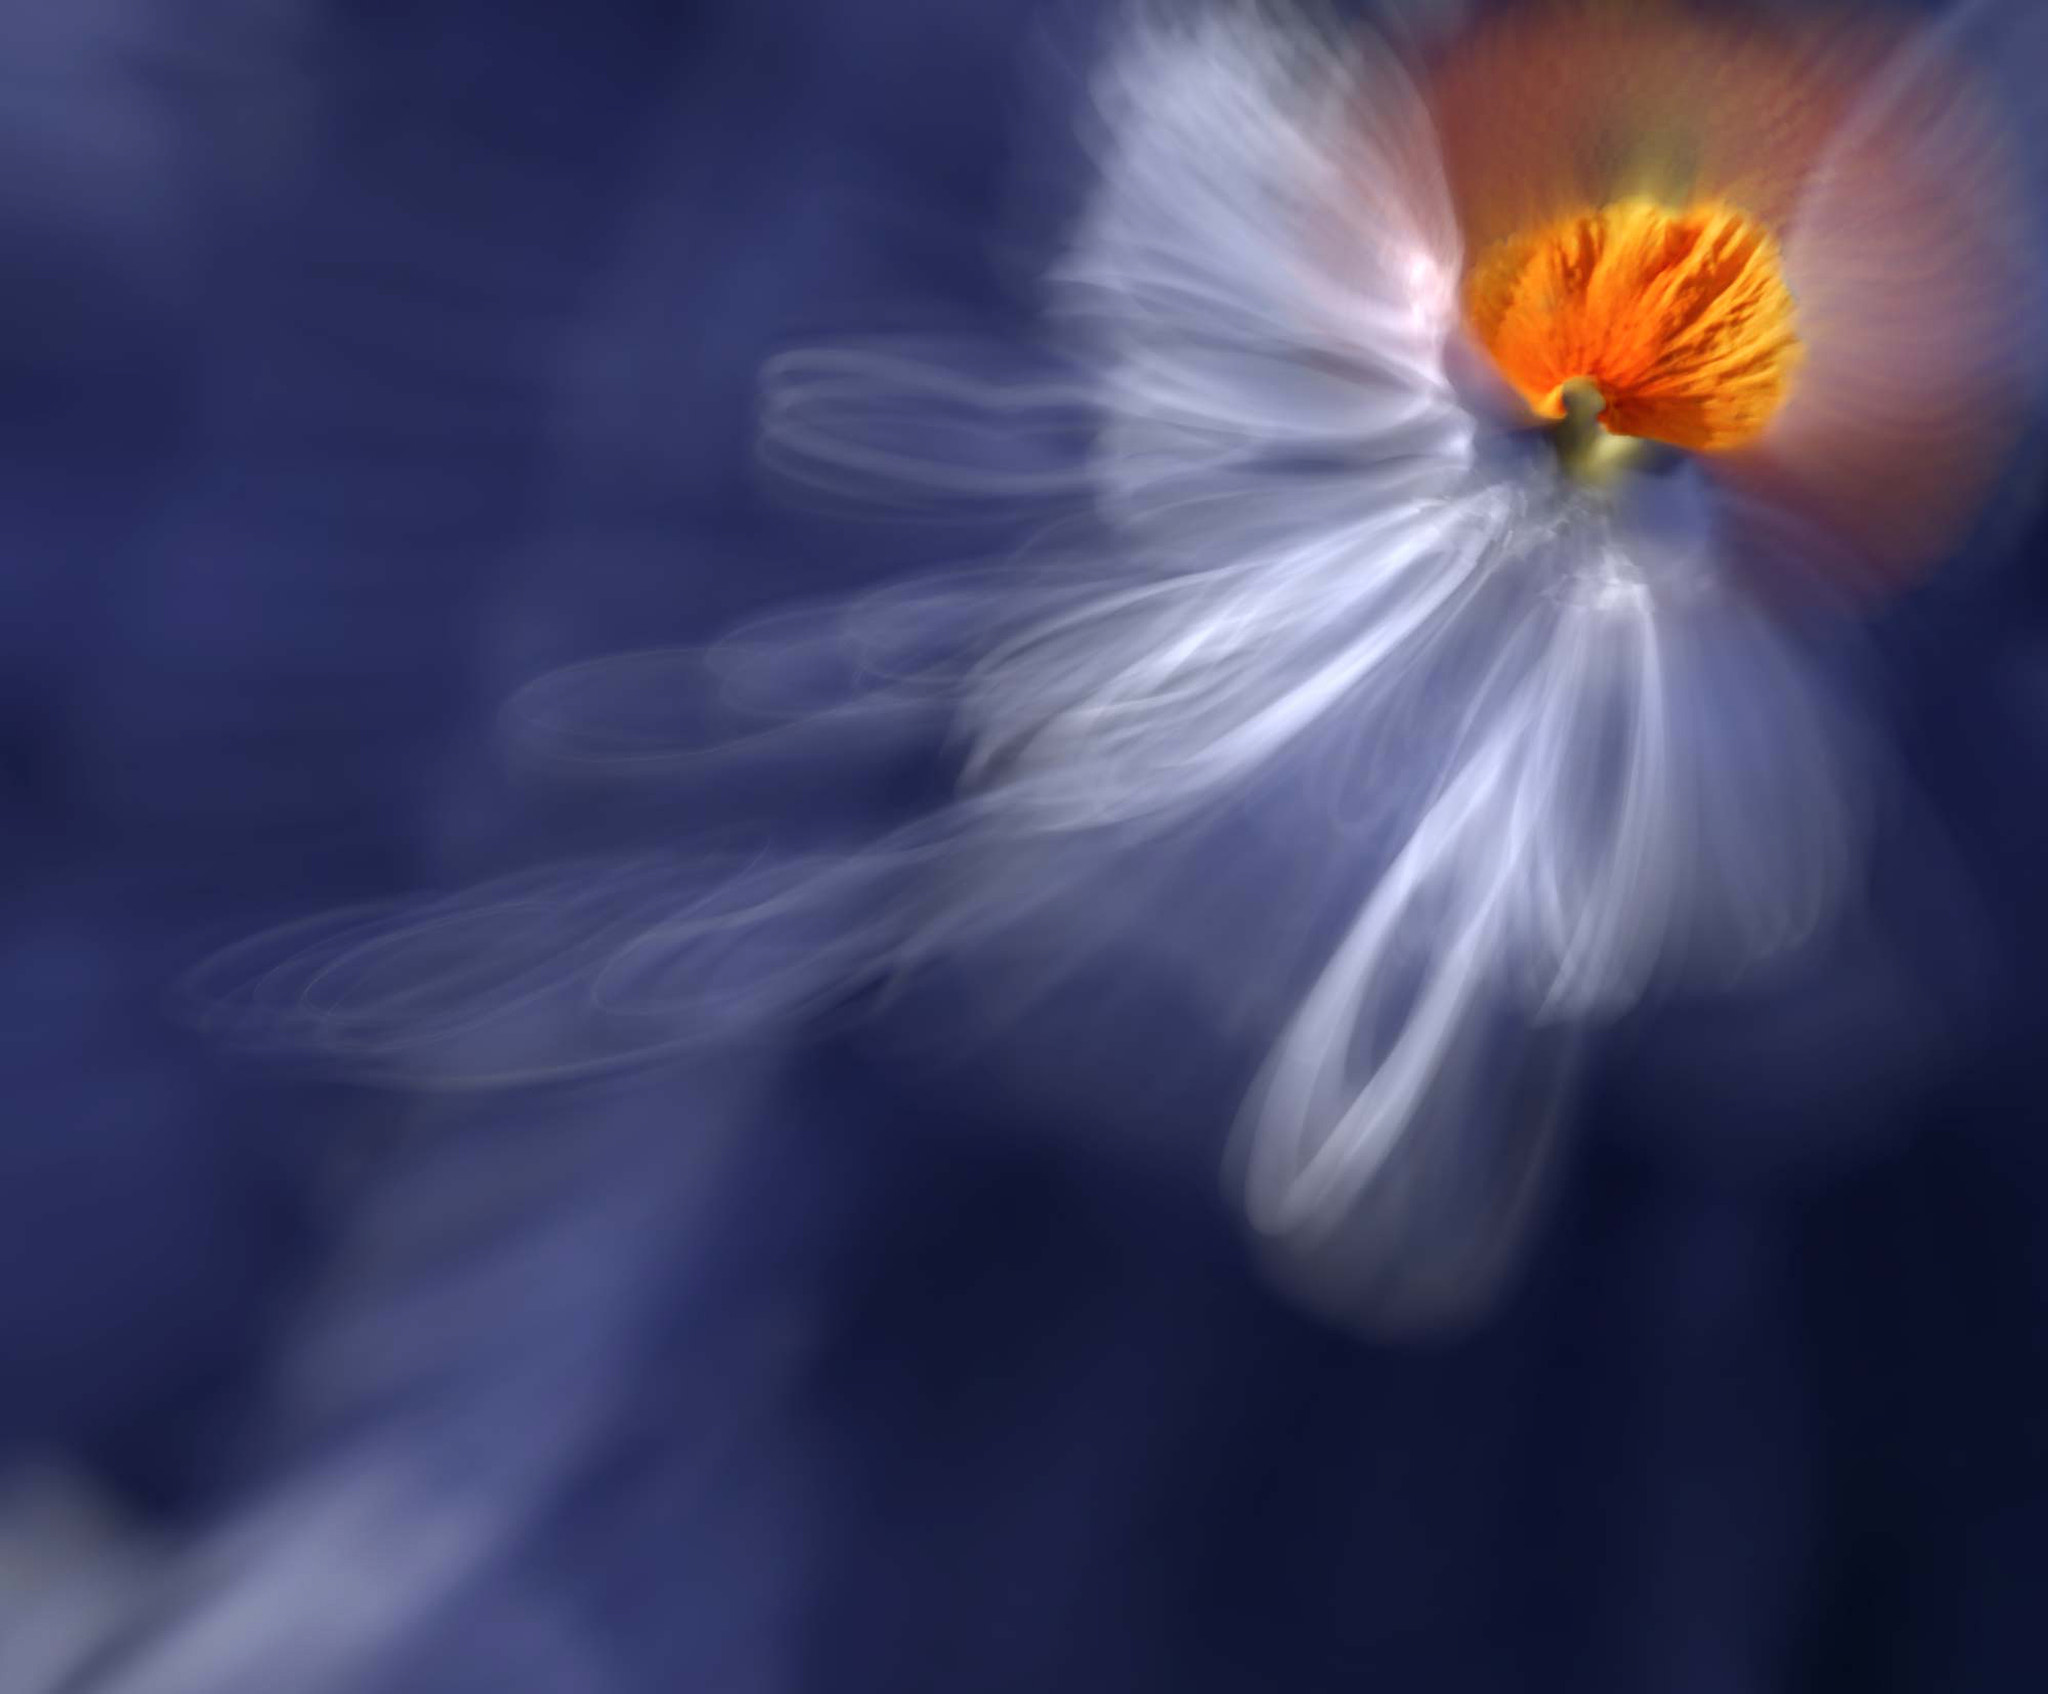 Photograph Here And Now ♥ Unconditional Love by Josep Sumalla on 500px